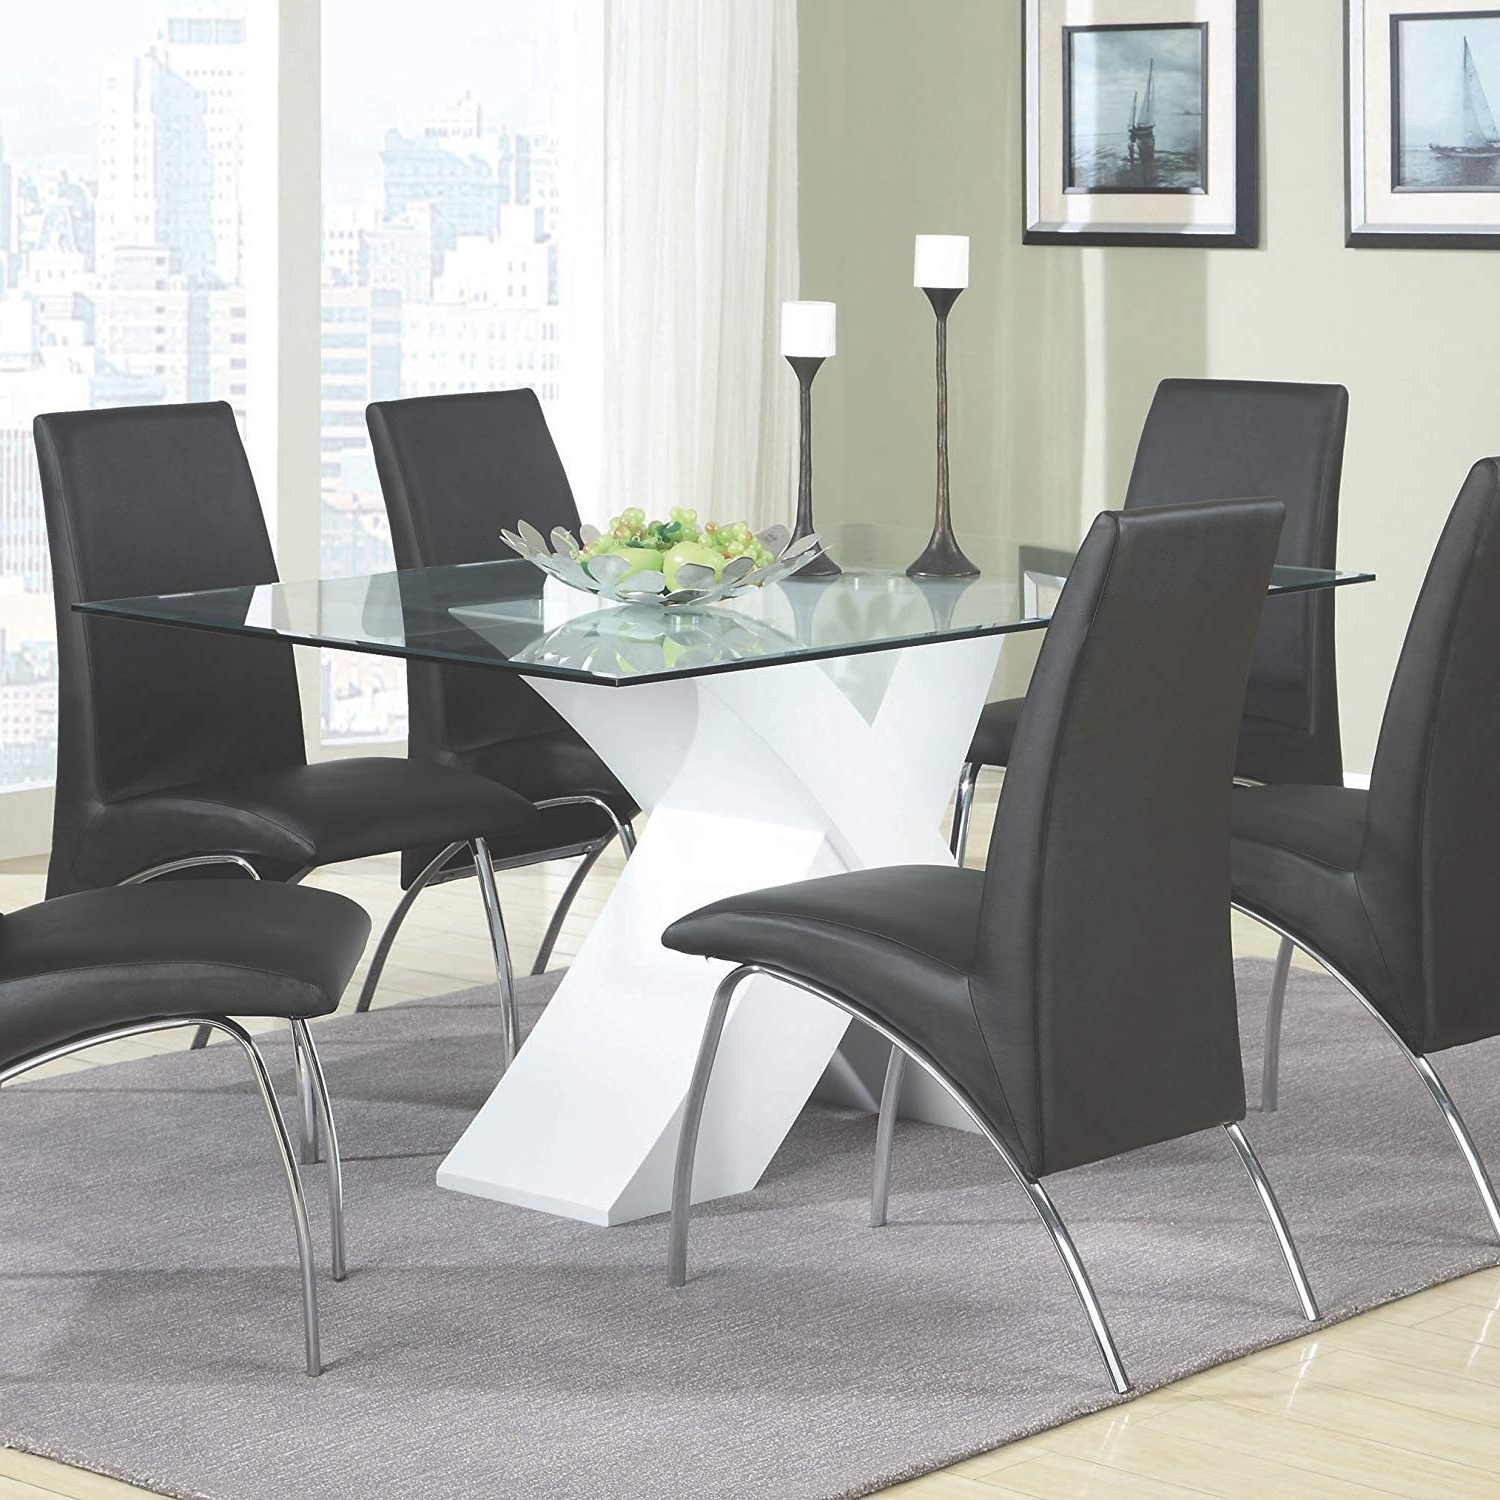 Amazon: Coaster Home Furnishings 120821 Contemporary Glass Top For Latest Contemporary Dining Room Tables And Chairs (View 17 of 25)